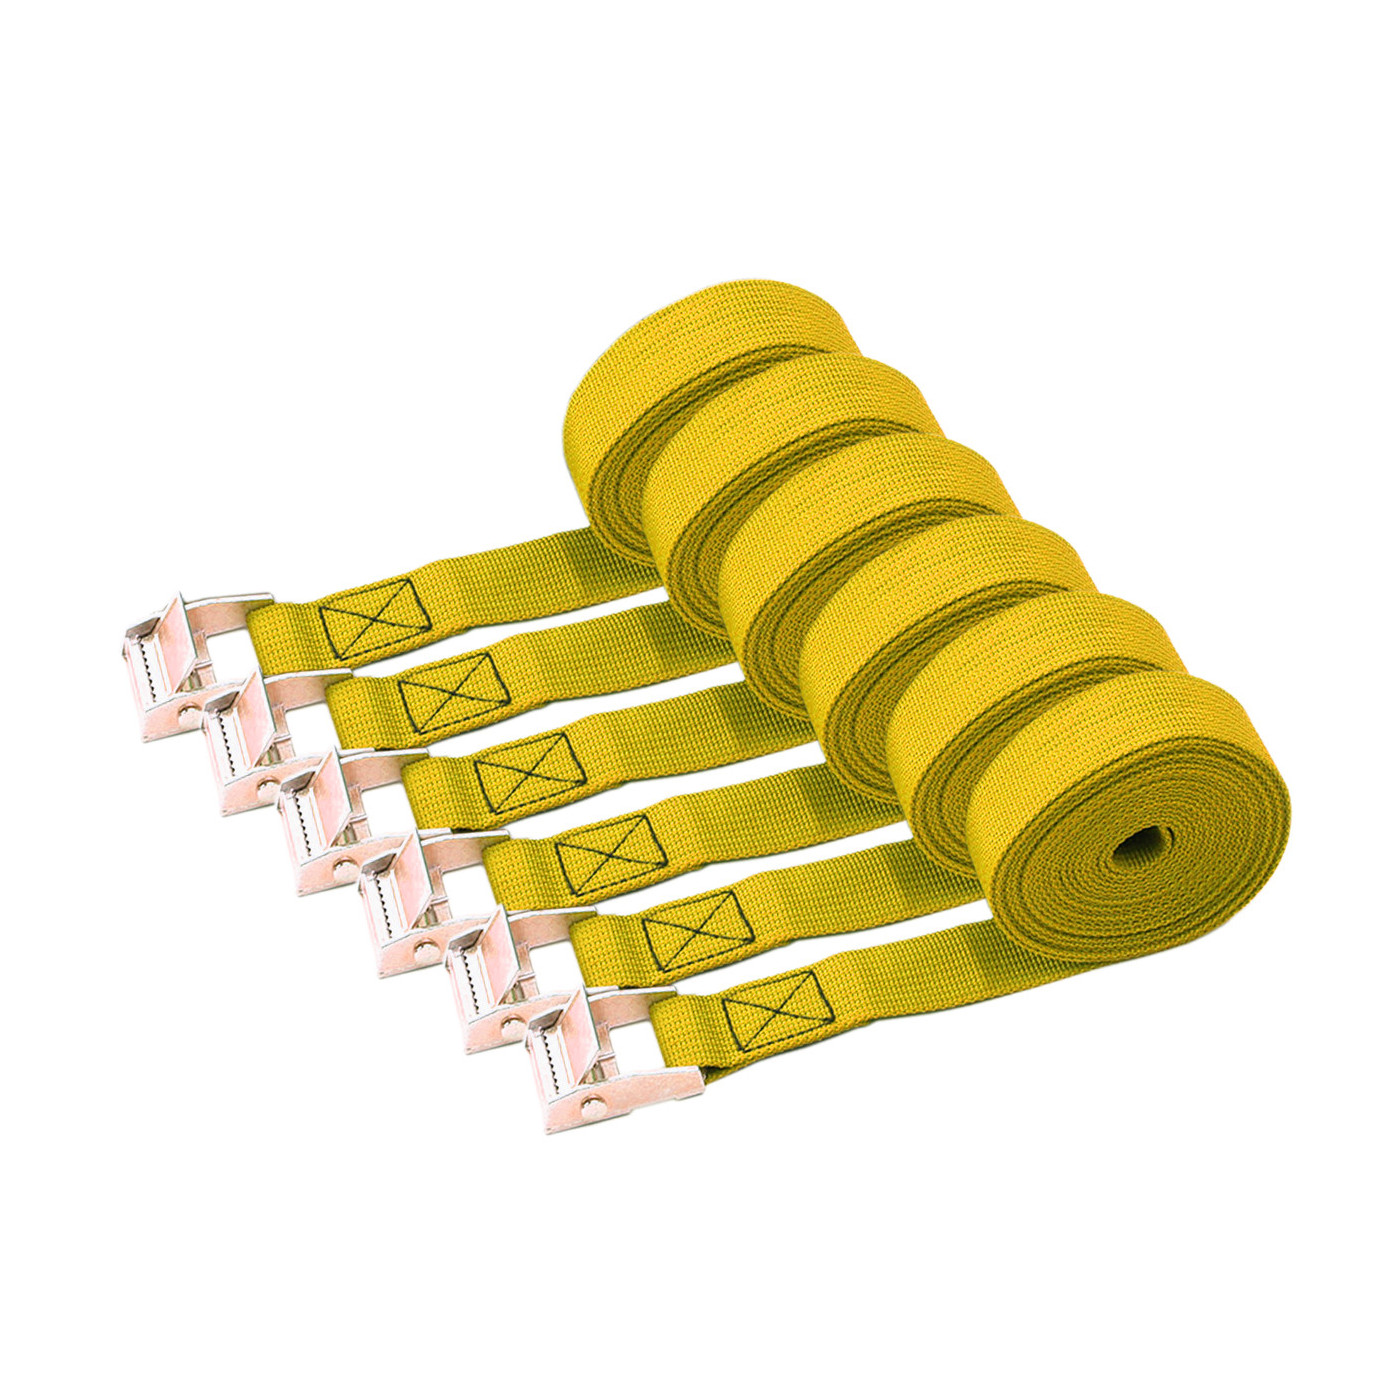 Set of 6 quick release tie down straps (3.5 meters each, yellow)